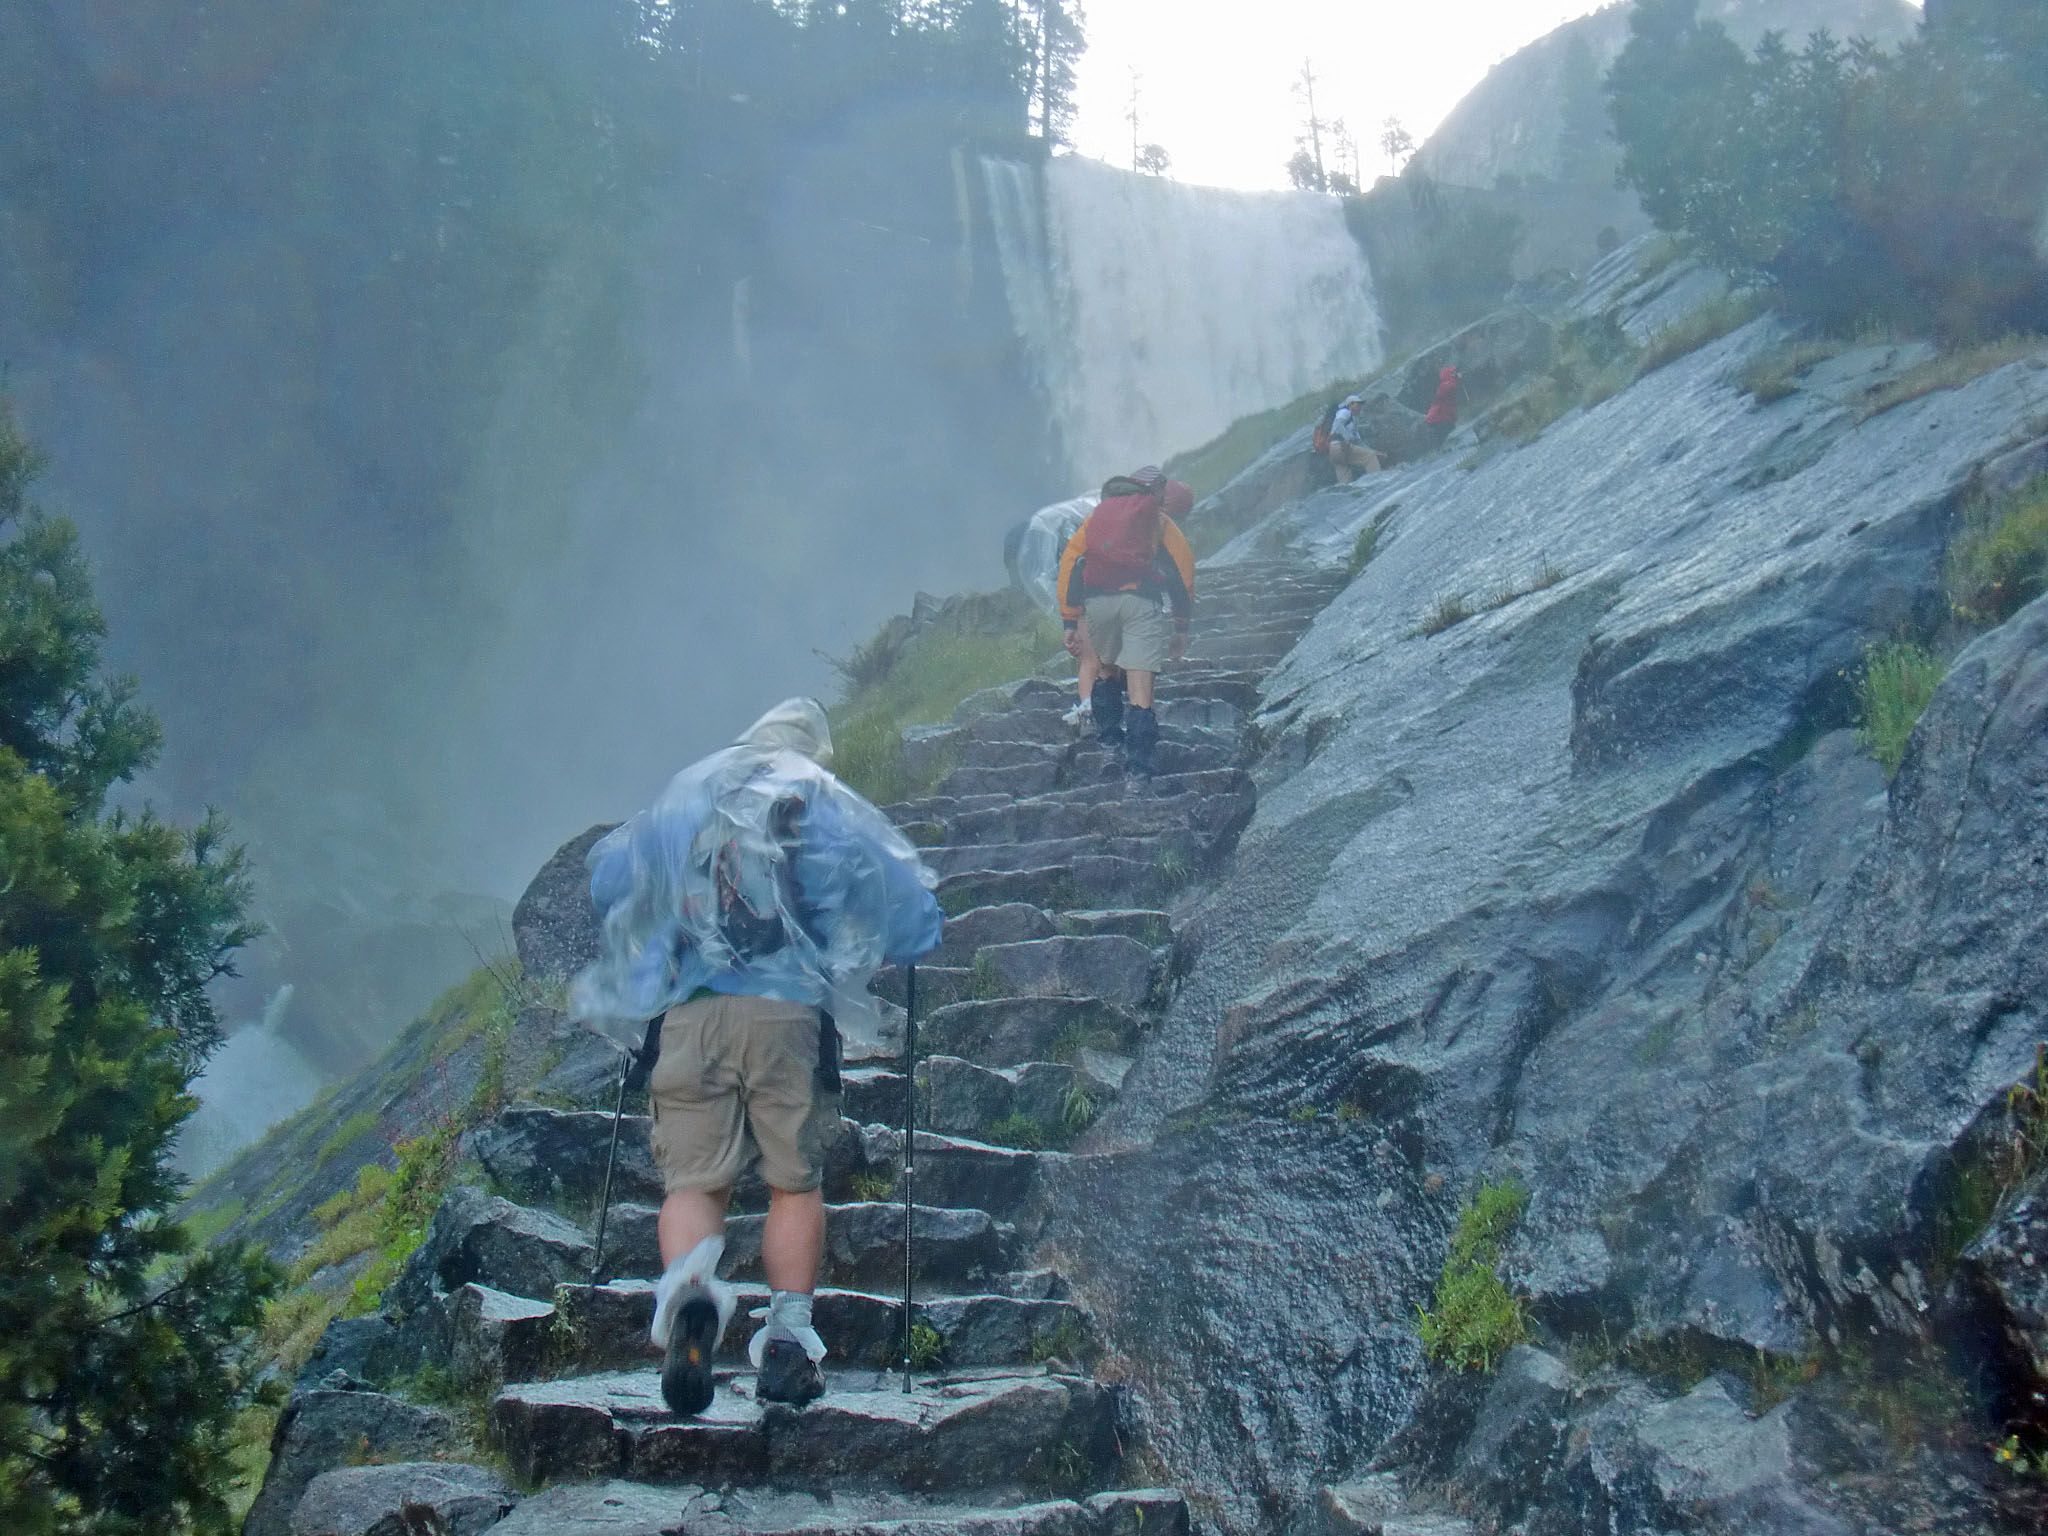 How to survive the Mist Trail Deluge | MrHalfDome's Blog